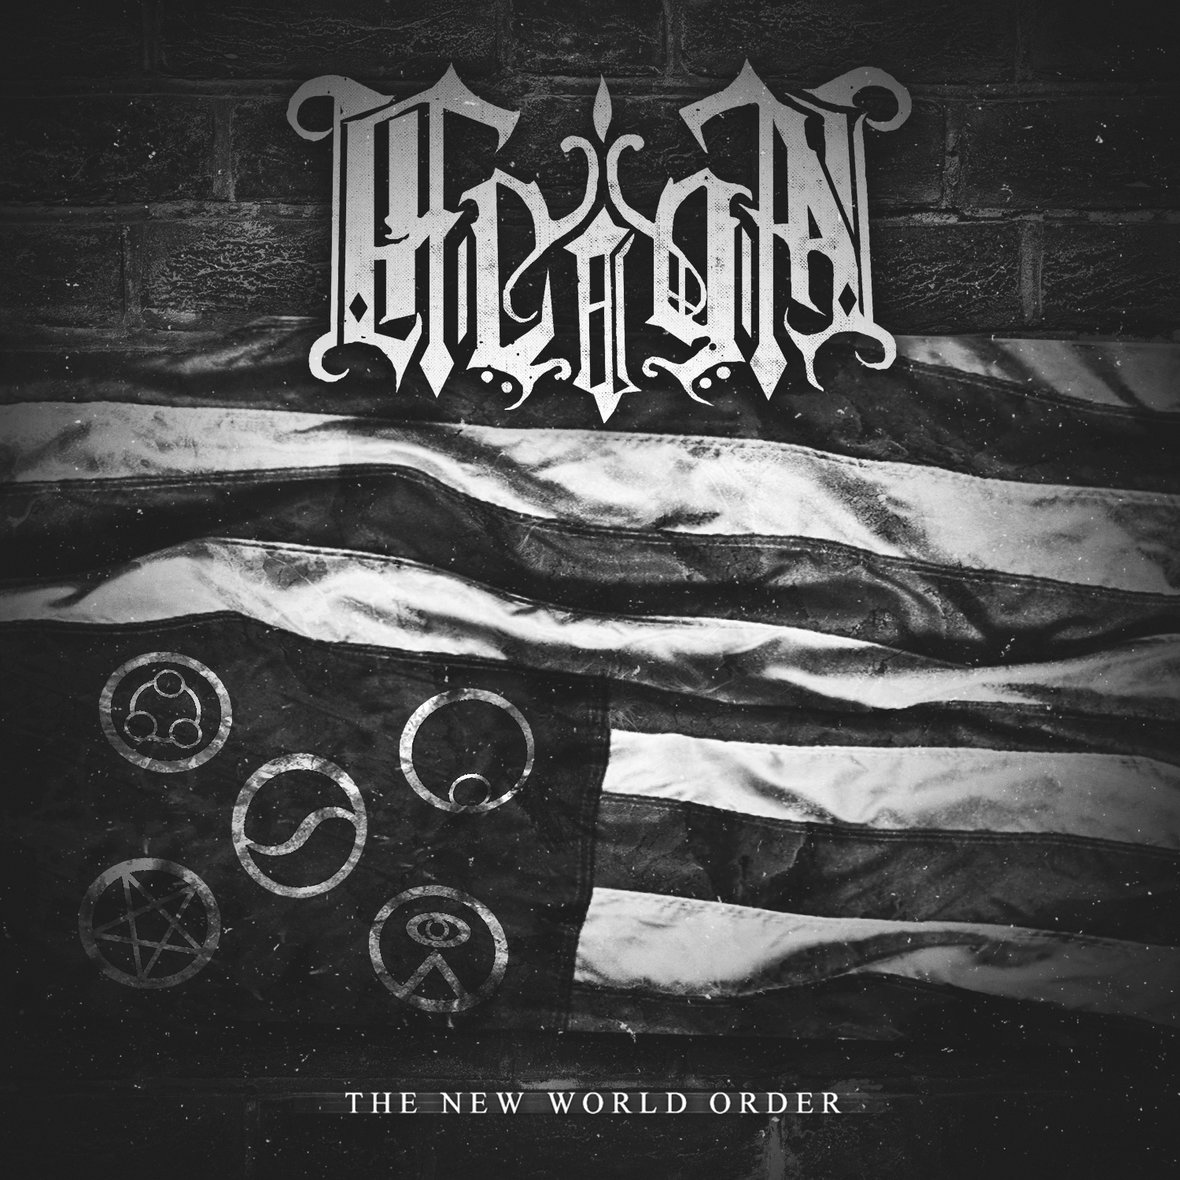 THE NEW WORLD ORDER ALBUM ART